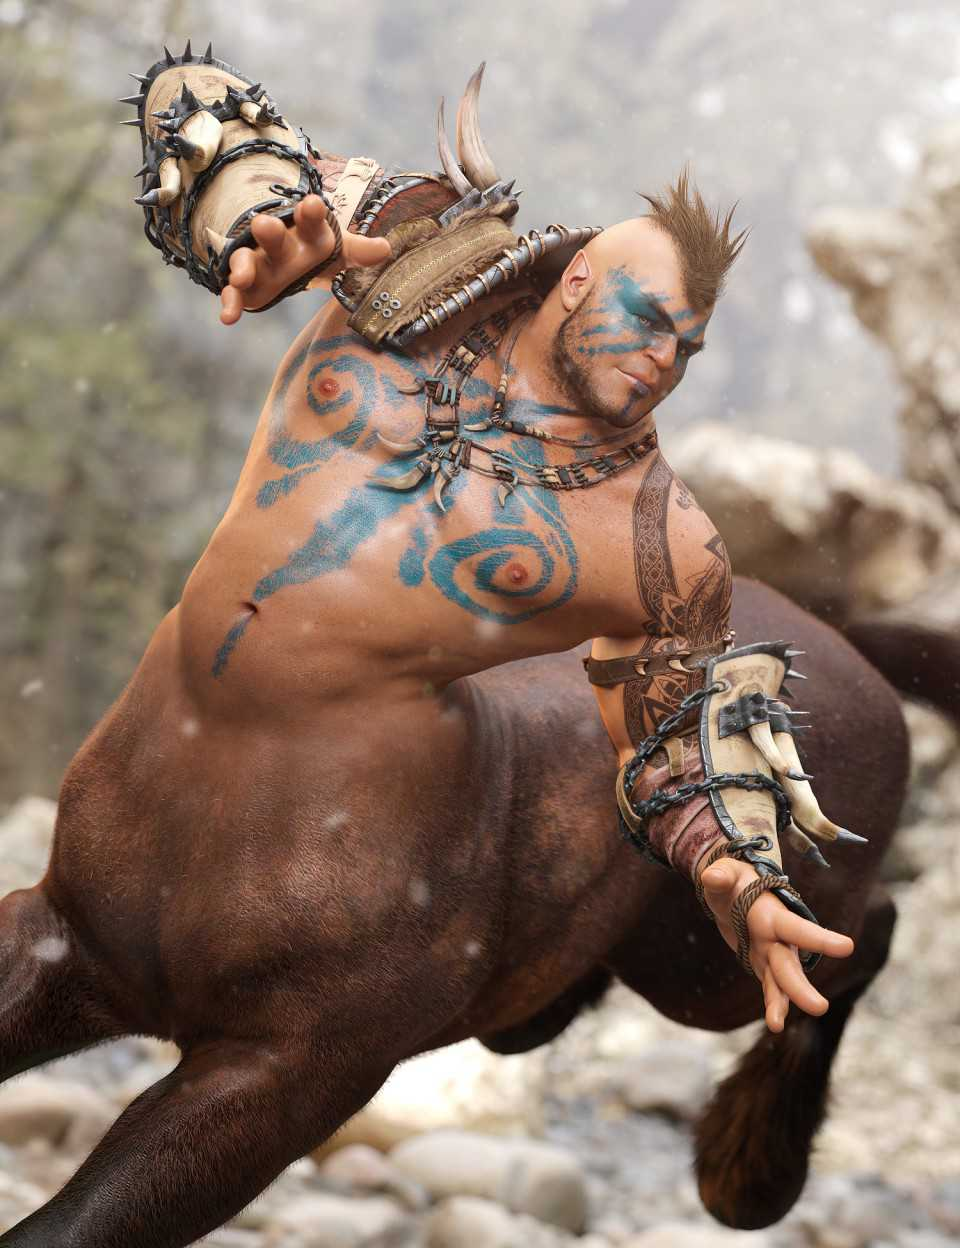 Centaur Maxx for Genesis 8 Male Centaur